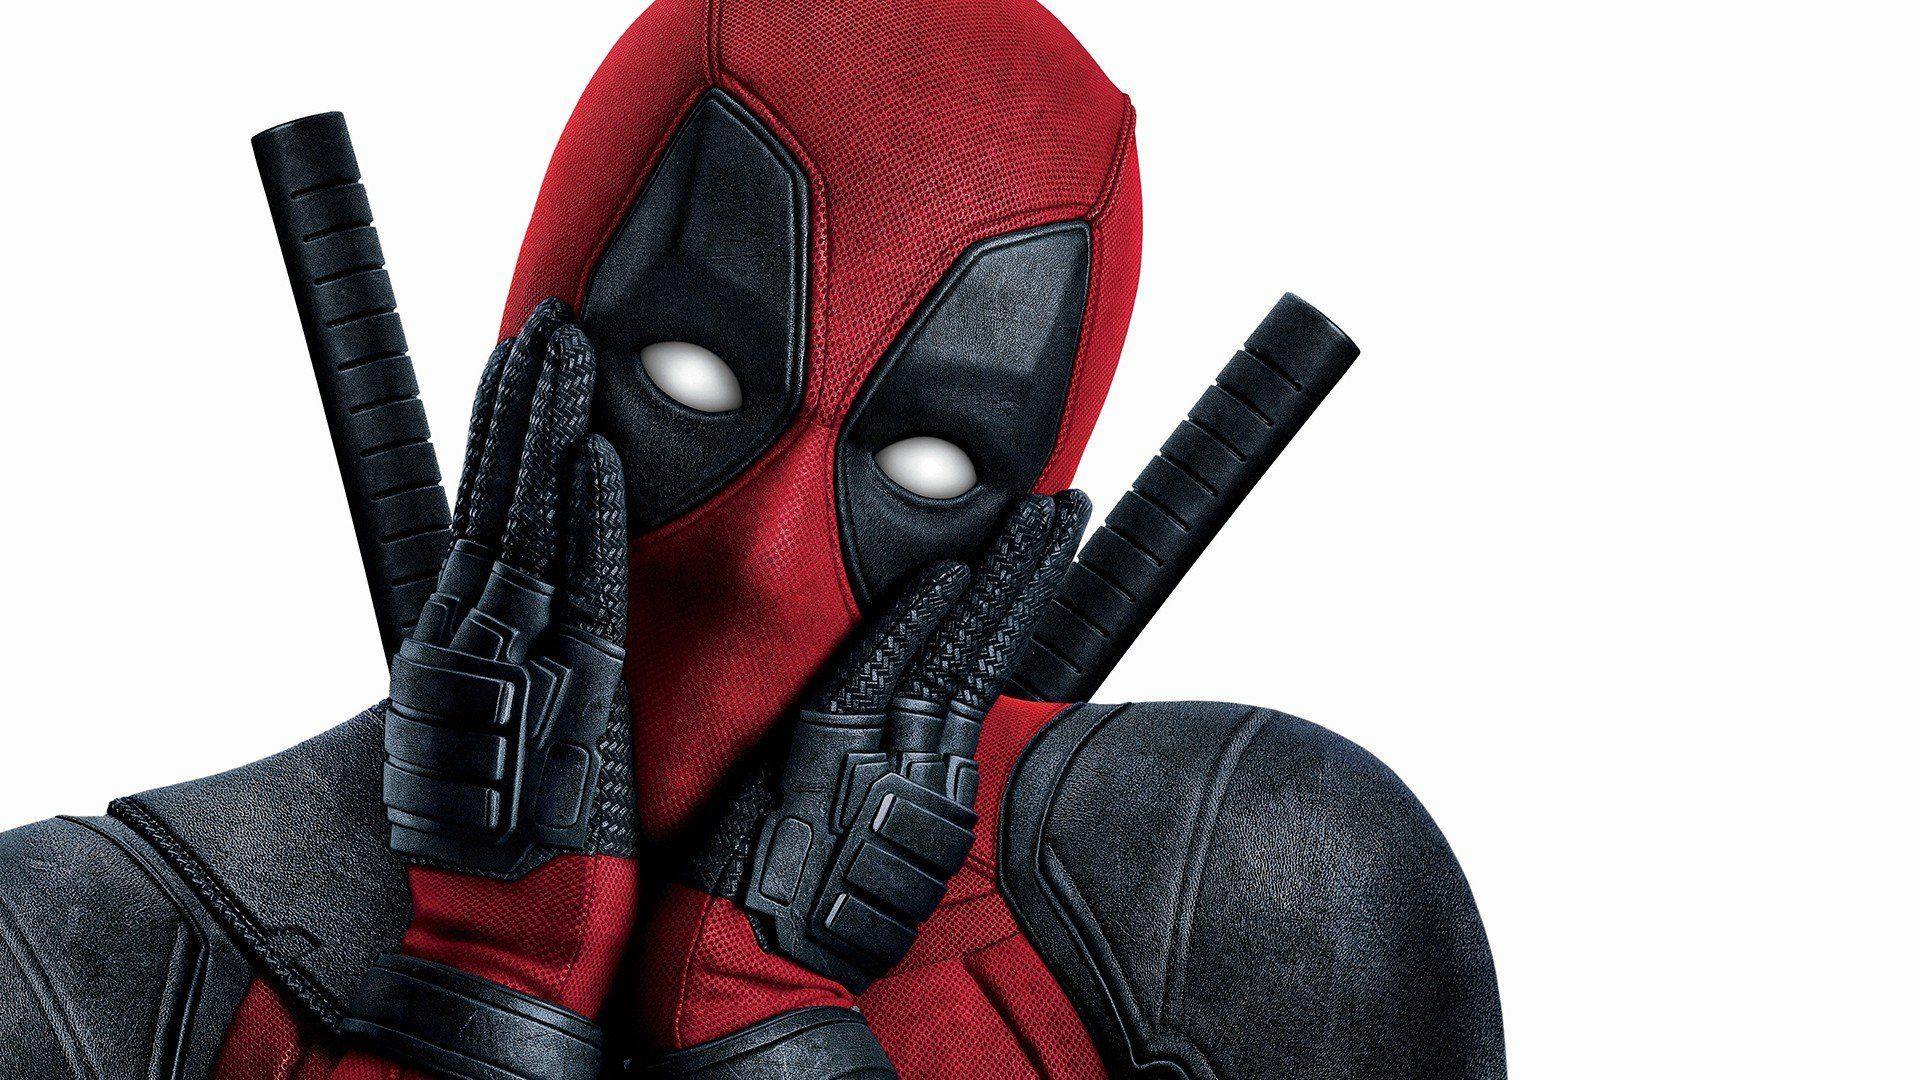 Deadpool Funny 905 Deadpool Wallpapers Movies Wallpapers Marvel Comics Wallpapers Deadpool Wallpaper Deadpool Funny Deadpool Wallpaper Desktop